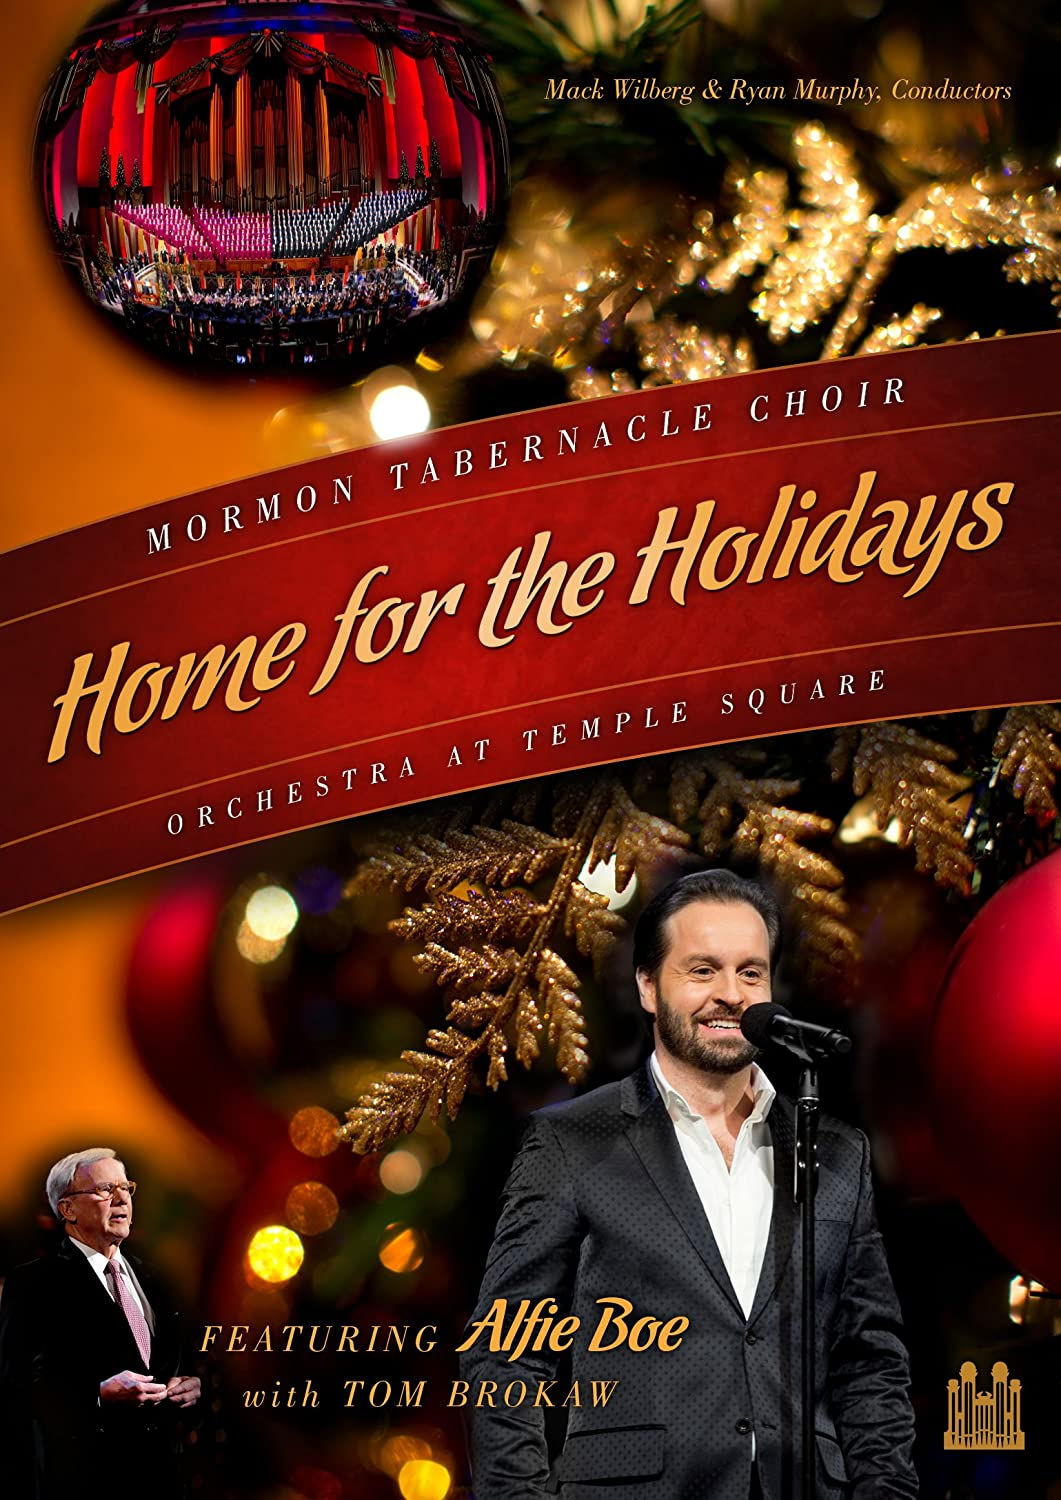 Amazon.com: Home for the Holidays: Mormon Tabernacle Choir and the ...